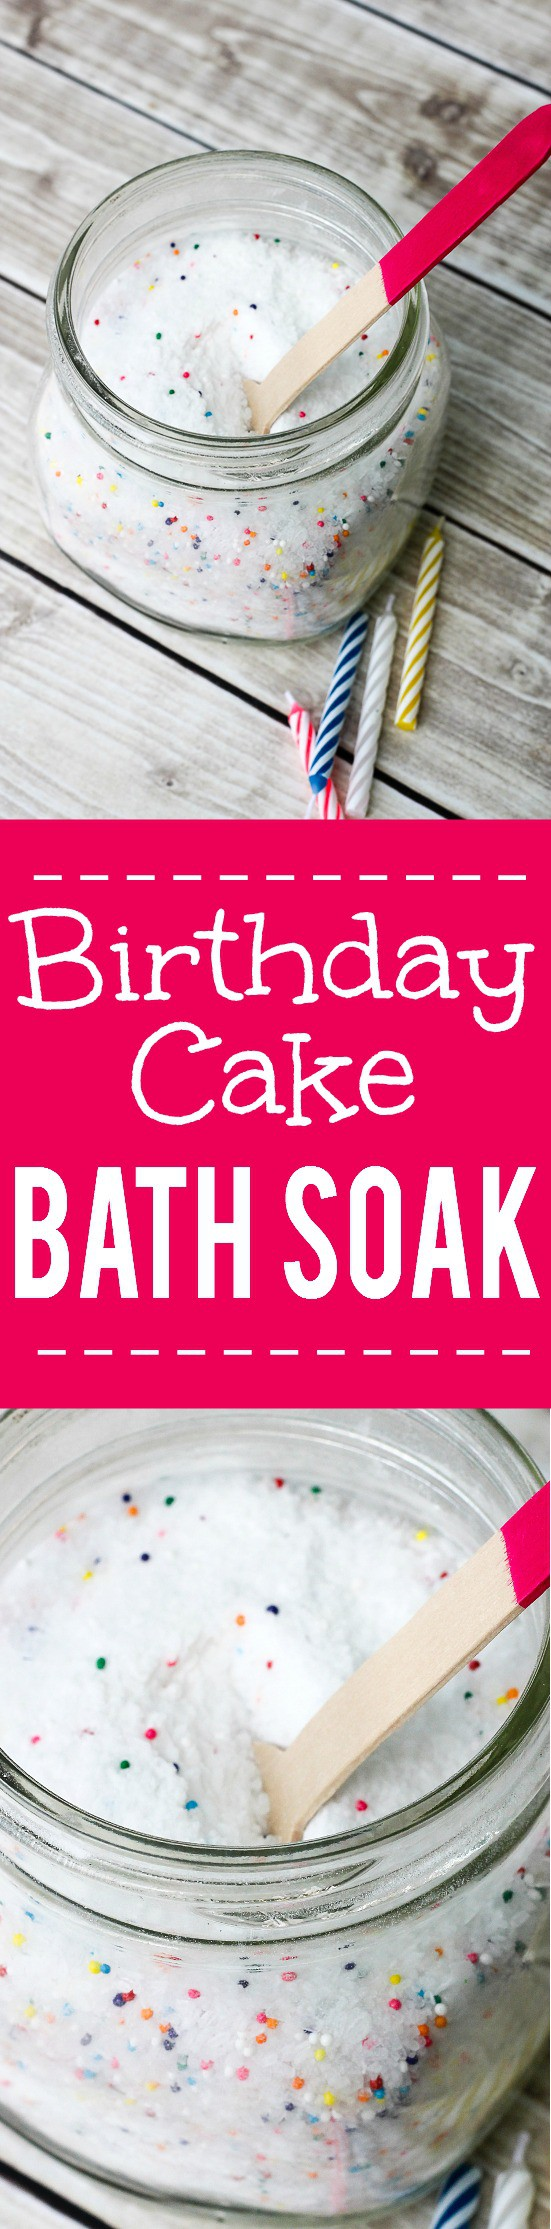 DIY Birthday Cake Bath Salts Tutorial -Relax and celebrate your birthday everyday with these DIY homemade Birthday Cake Bath Salts. This bath soak is also a yummy DIY gift idea. Check out the tutorial! Ooooh! Love this! I think it would make a great gift idea for tweens too!